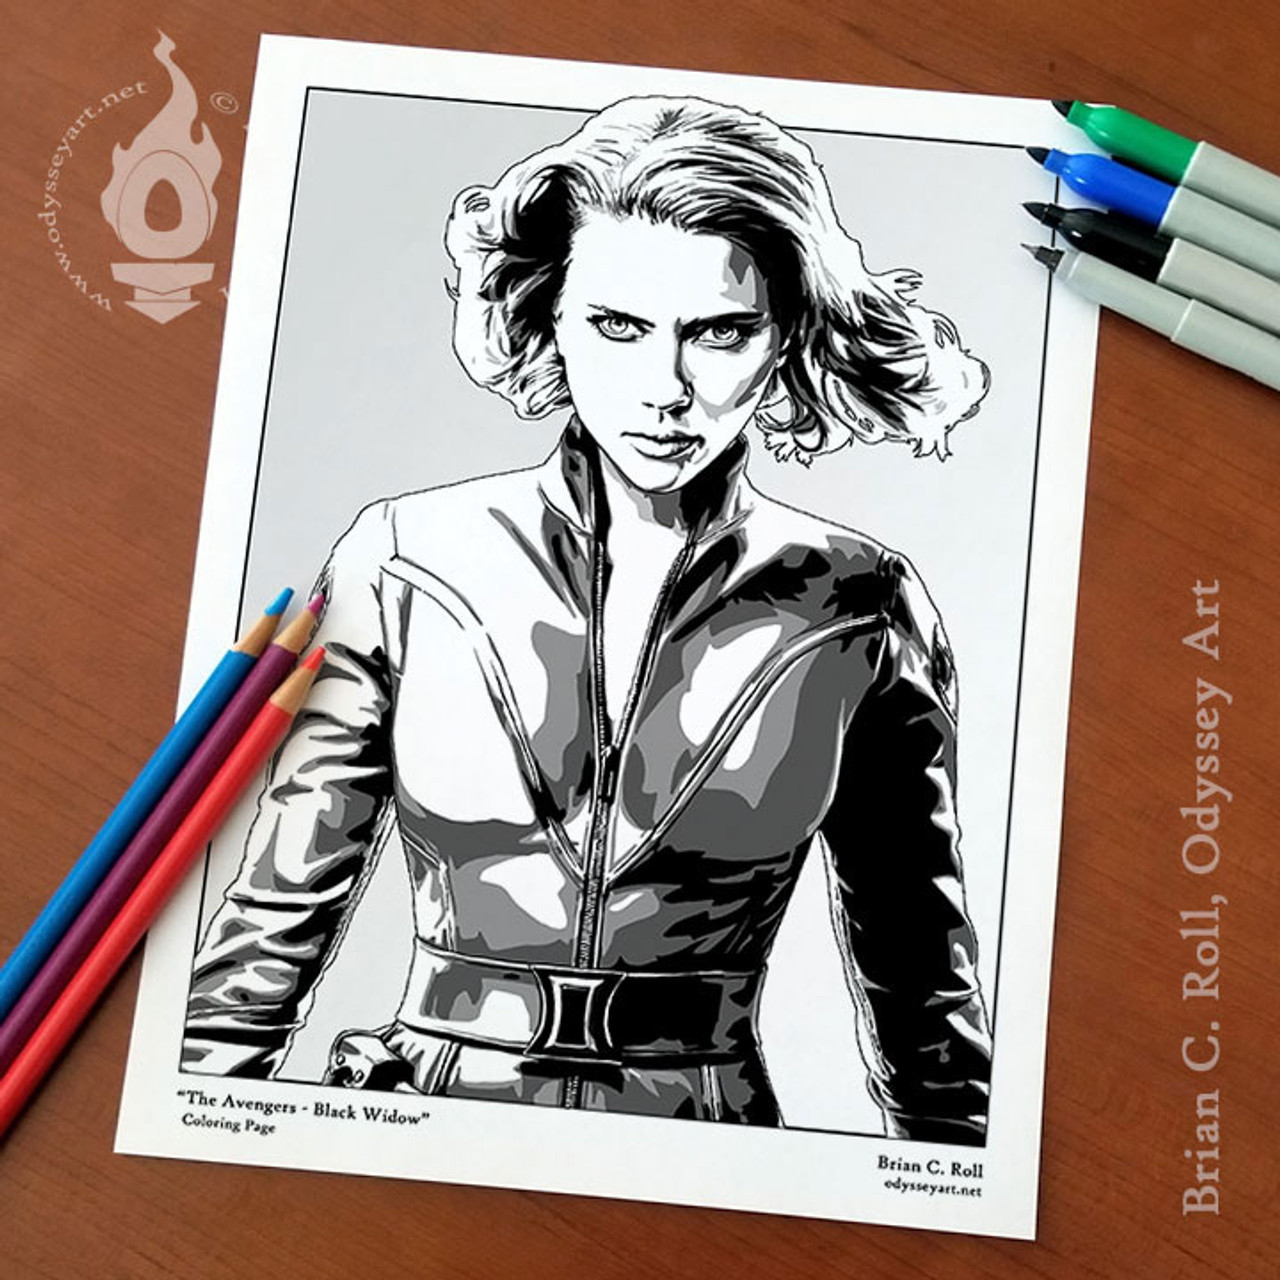 Black Widow Coloring Page Odyssey Art Art Of Brian C Roll